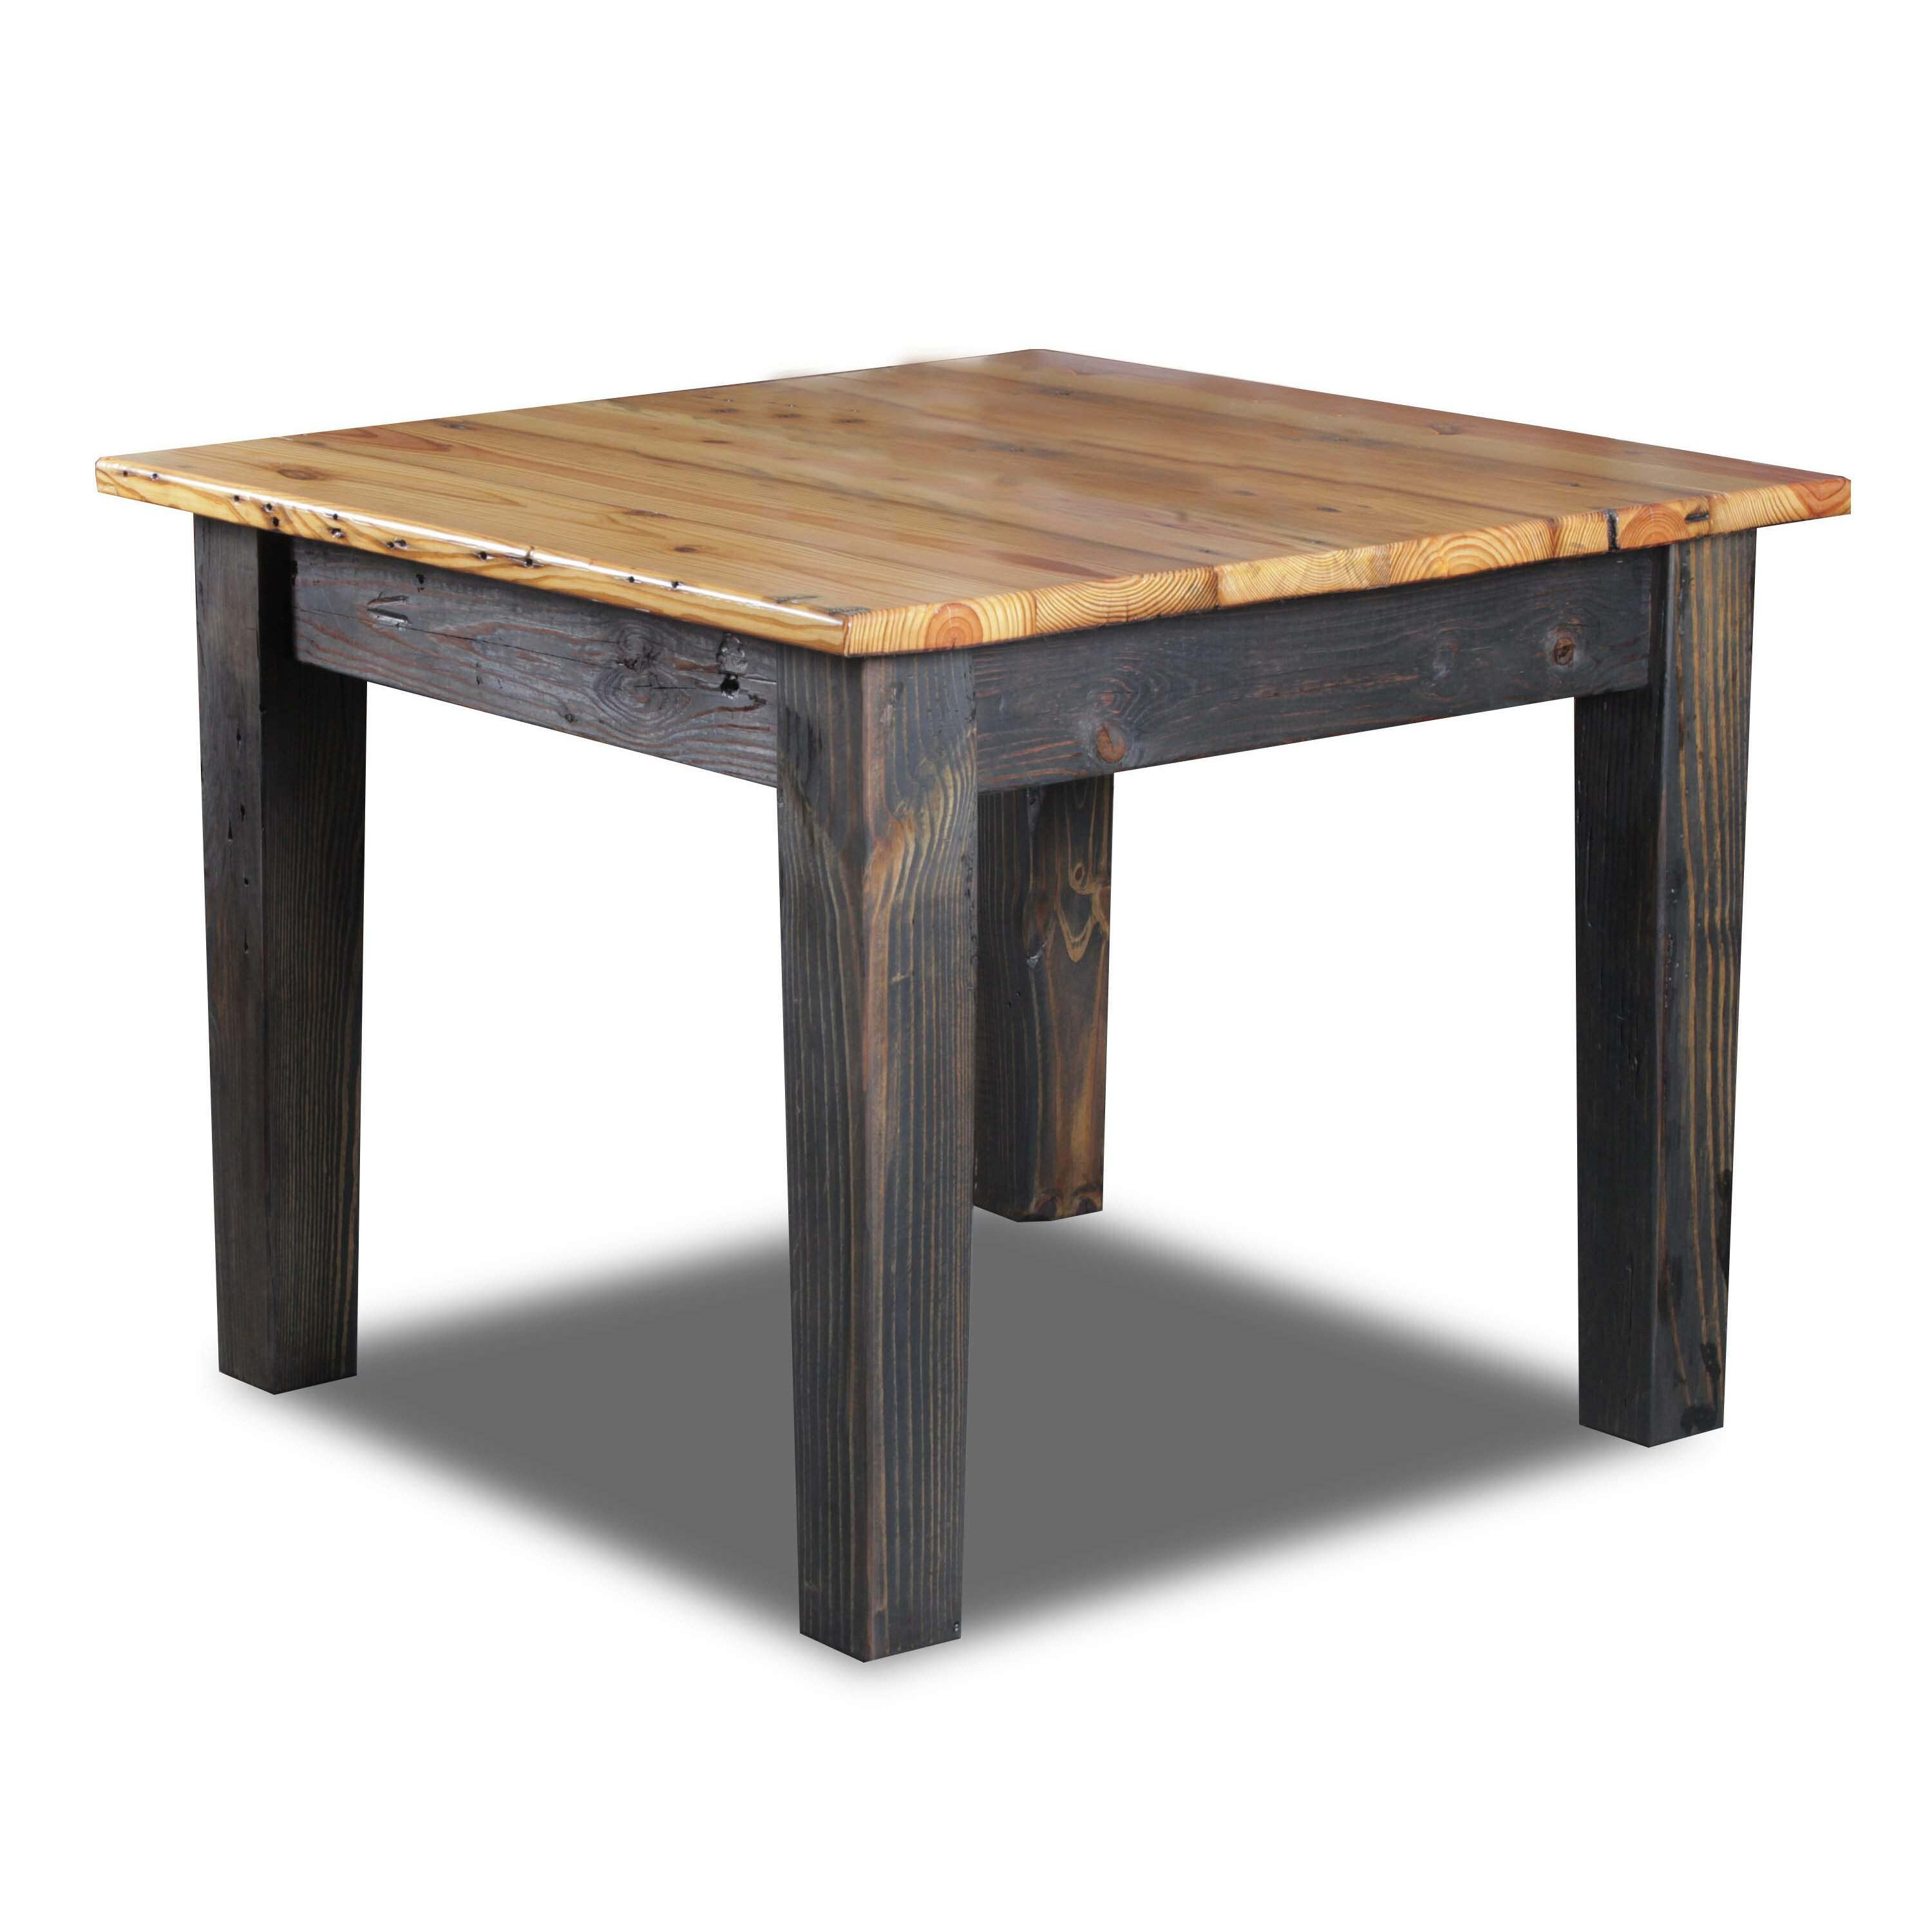 Vintage flooring and furniture farm bar height dining for Farmhouse counter height table